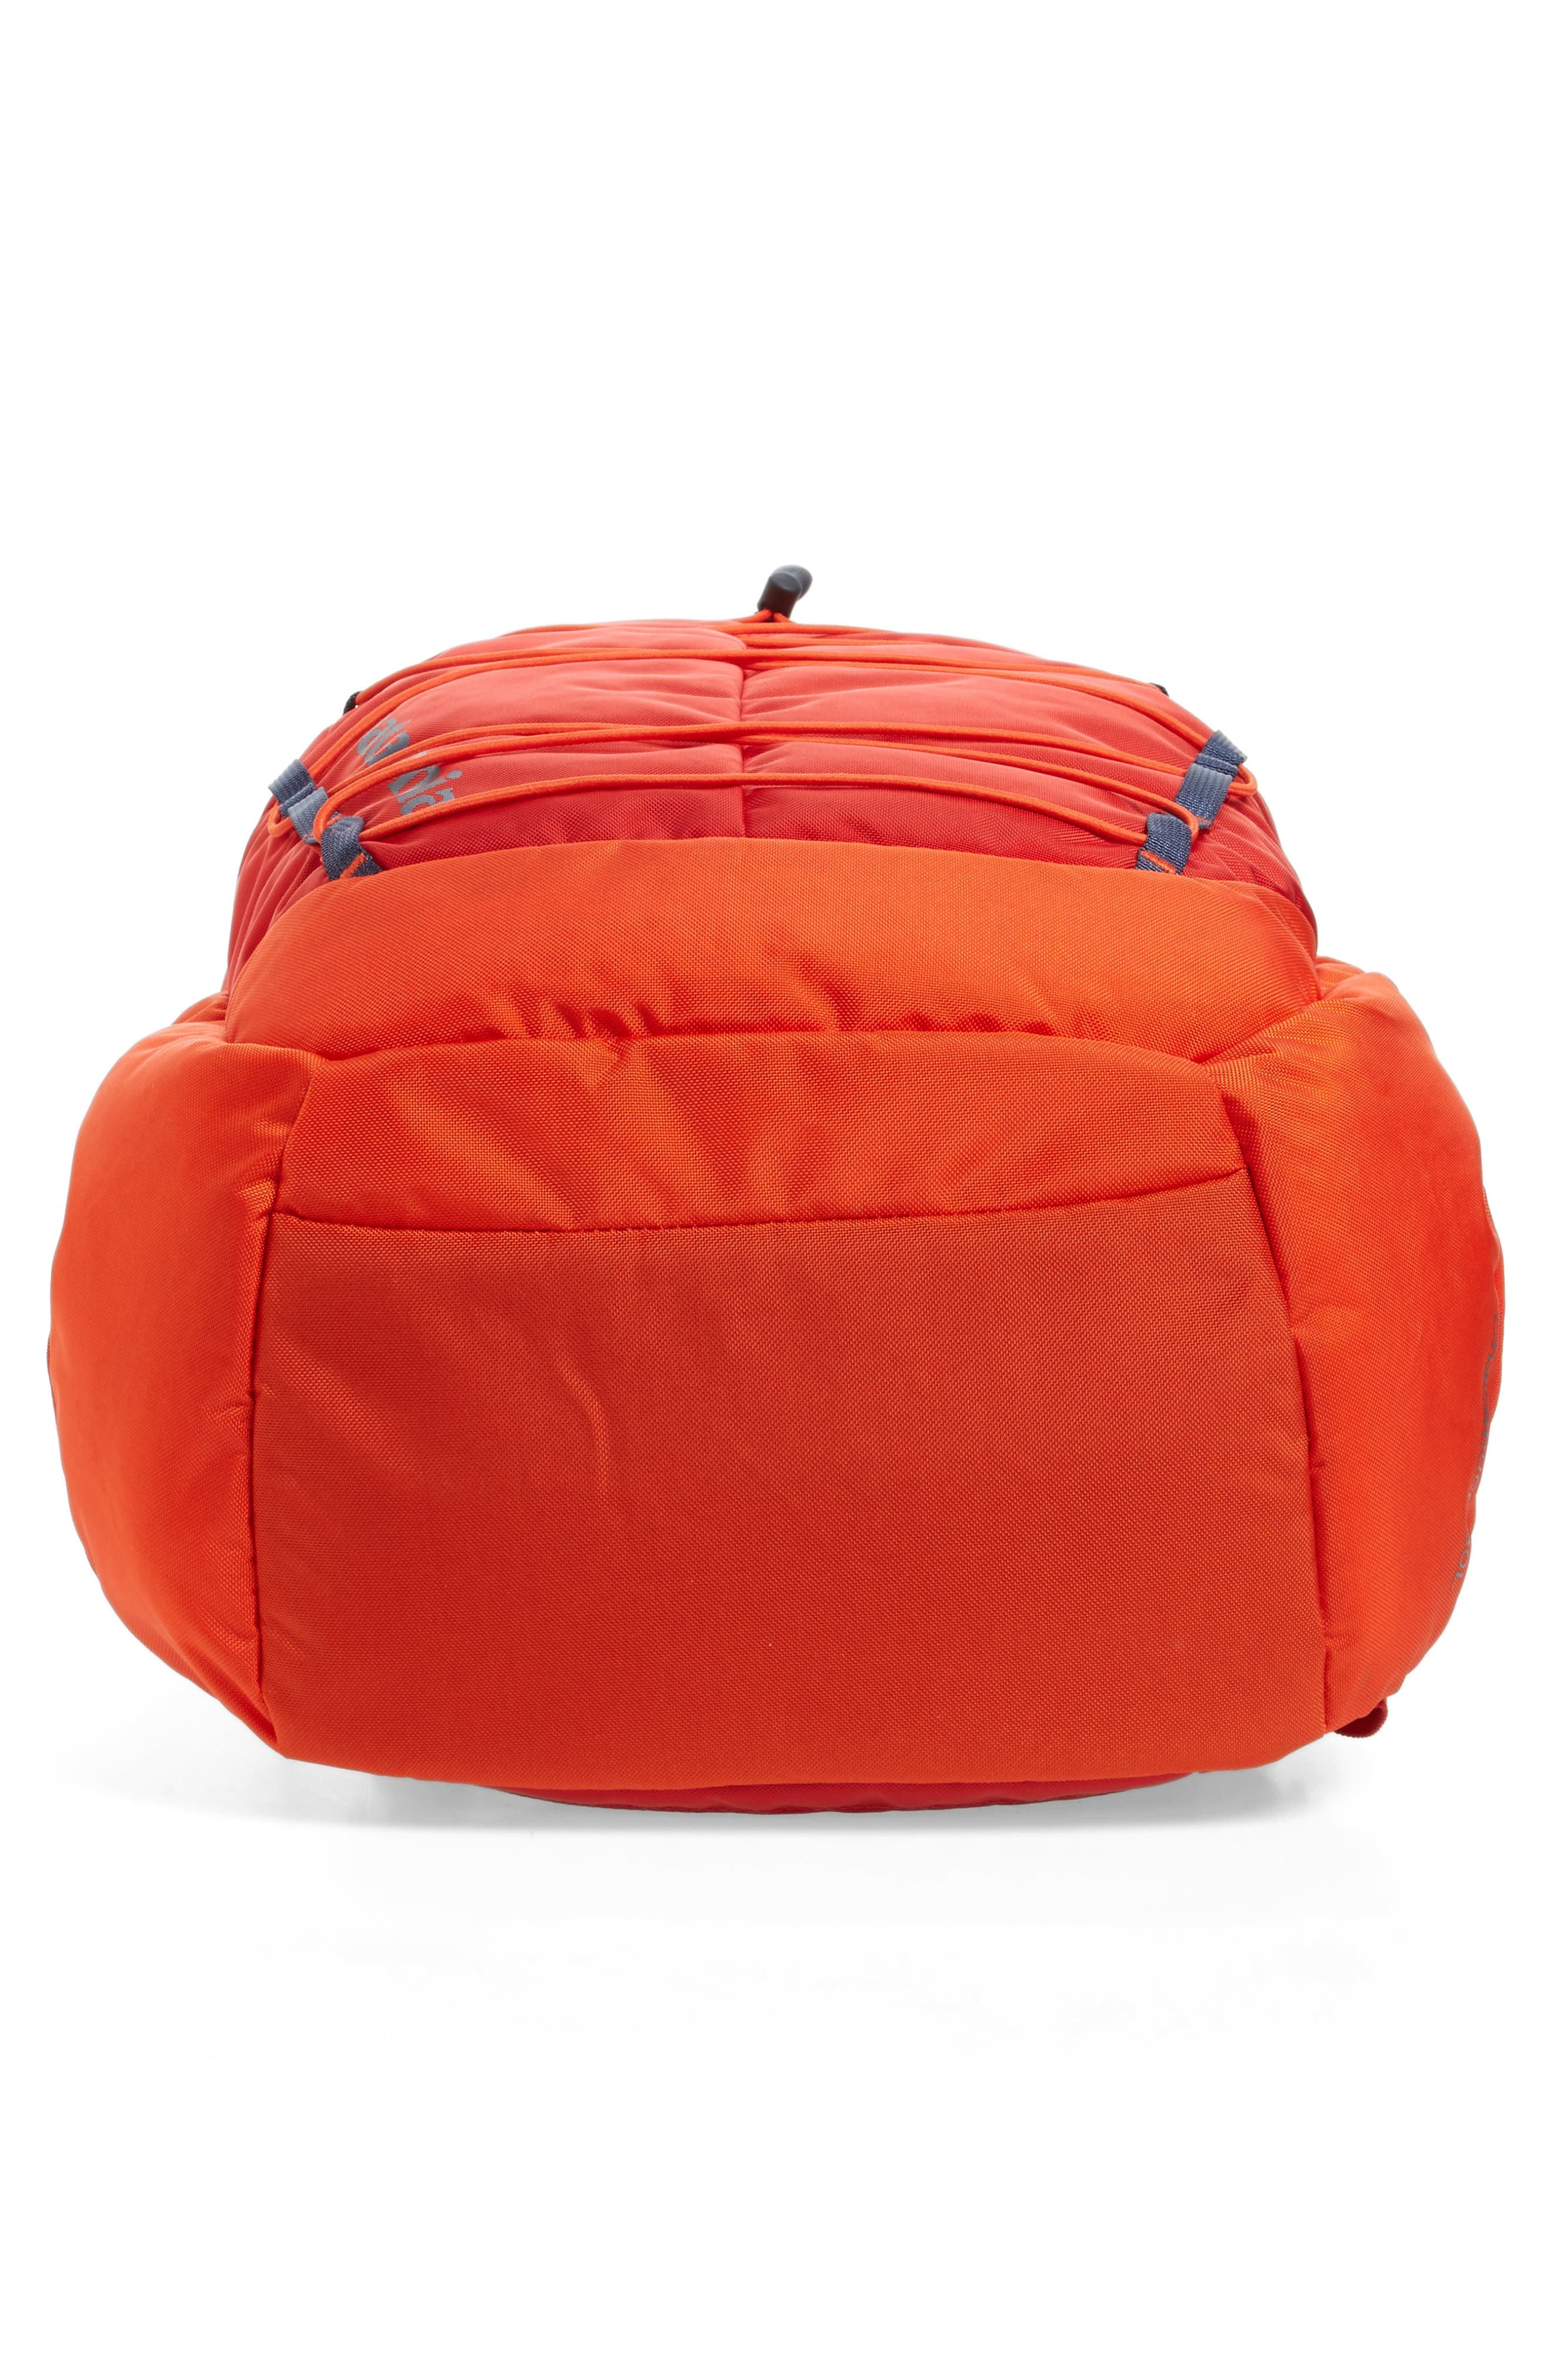 30L Chacabuco Backpack,                             Alternate thumbnail 6, color,                             Paintbrush Red